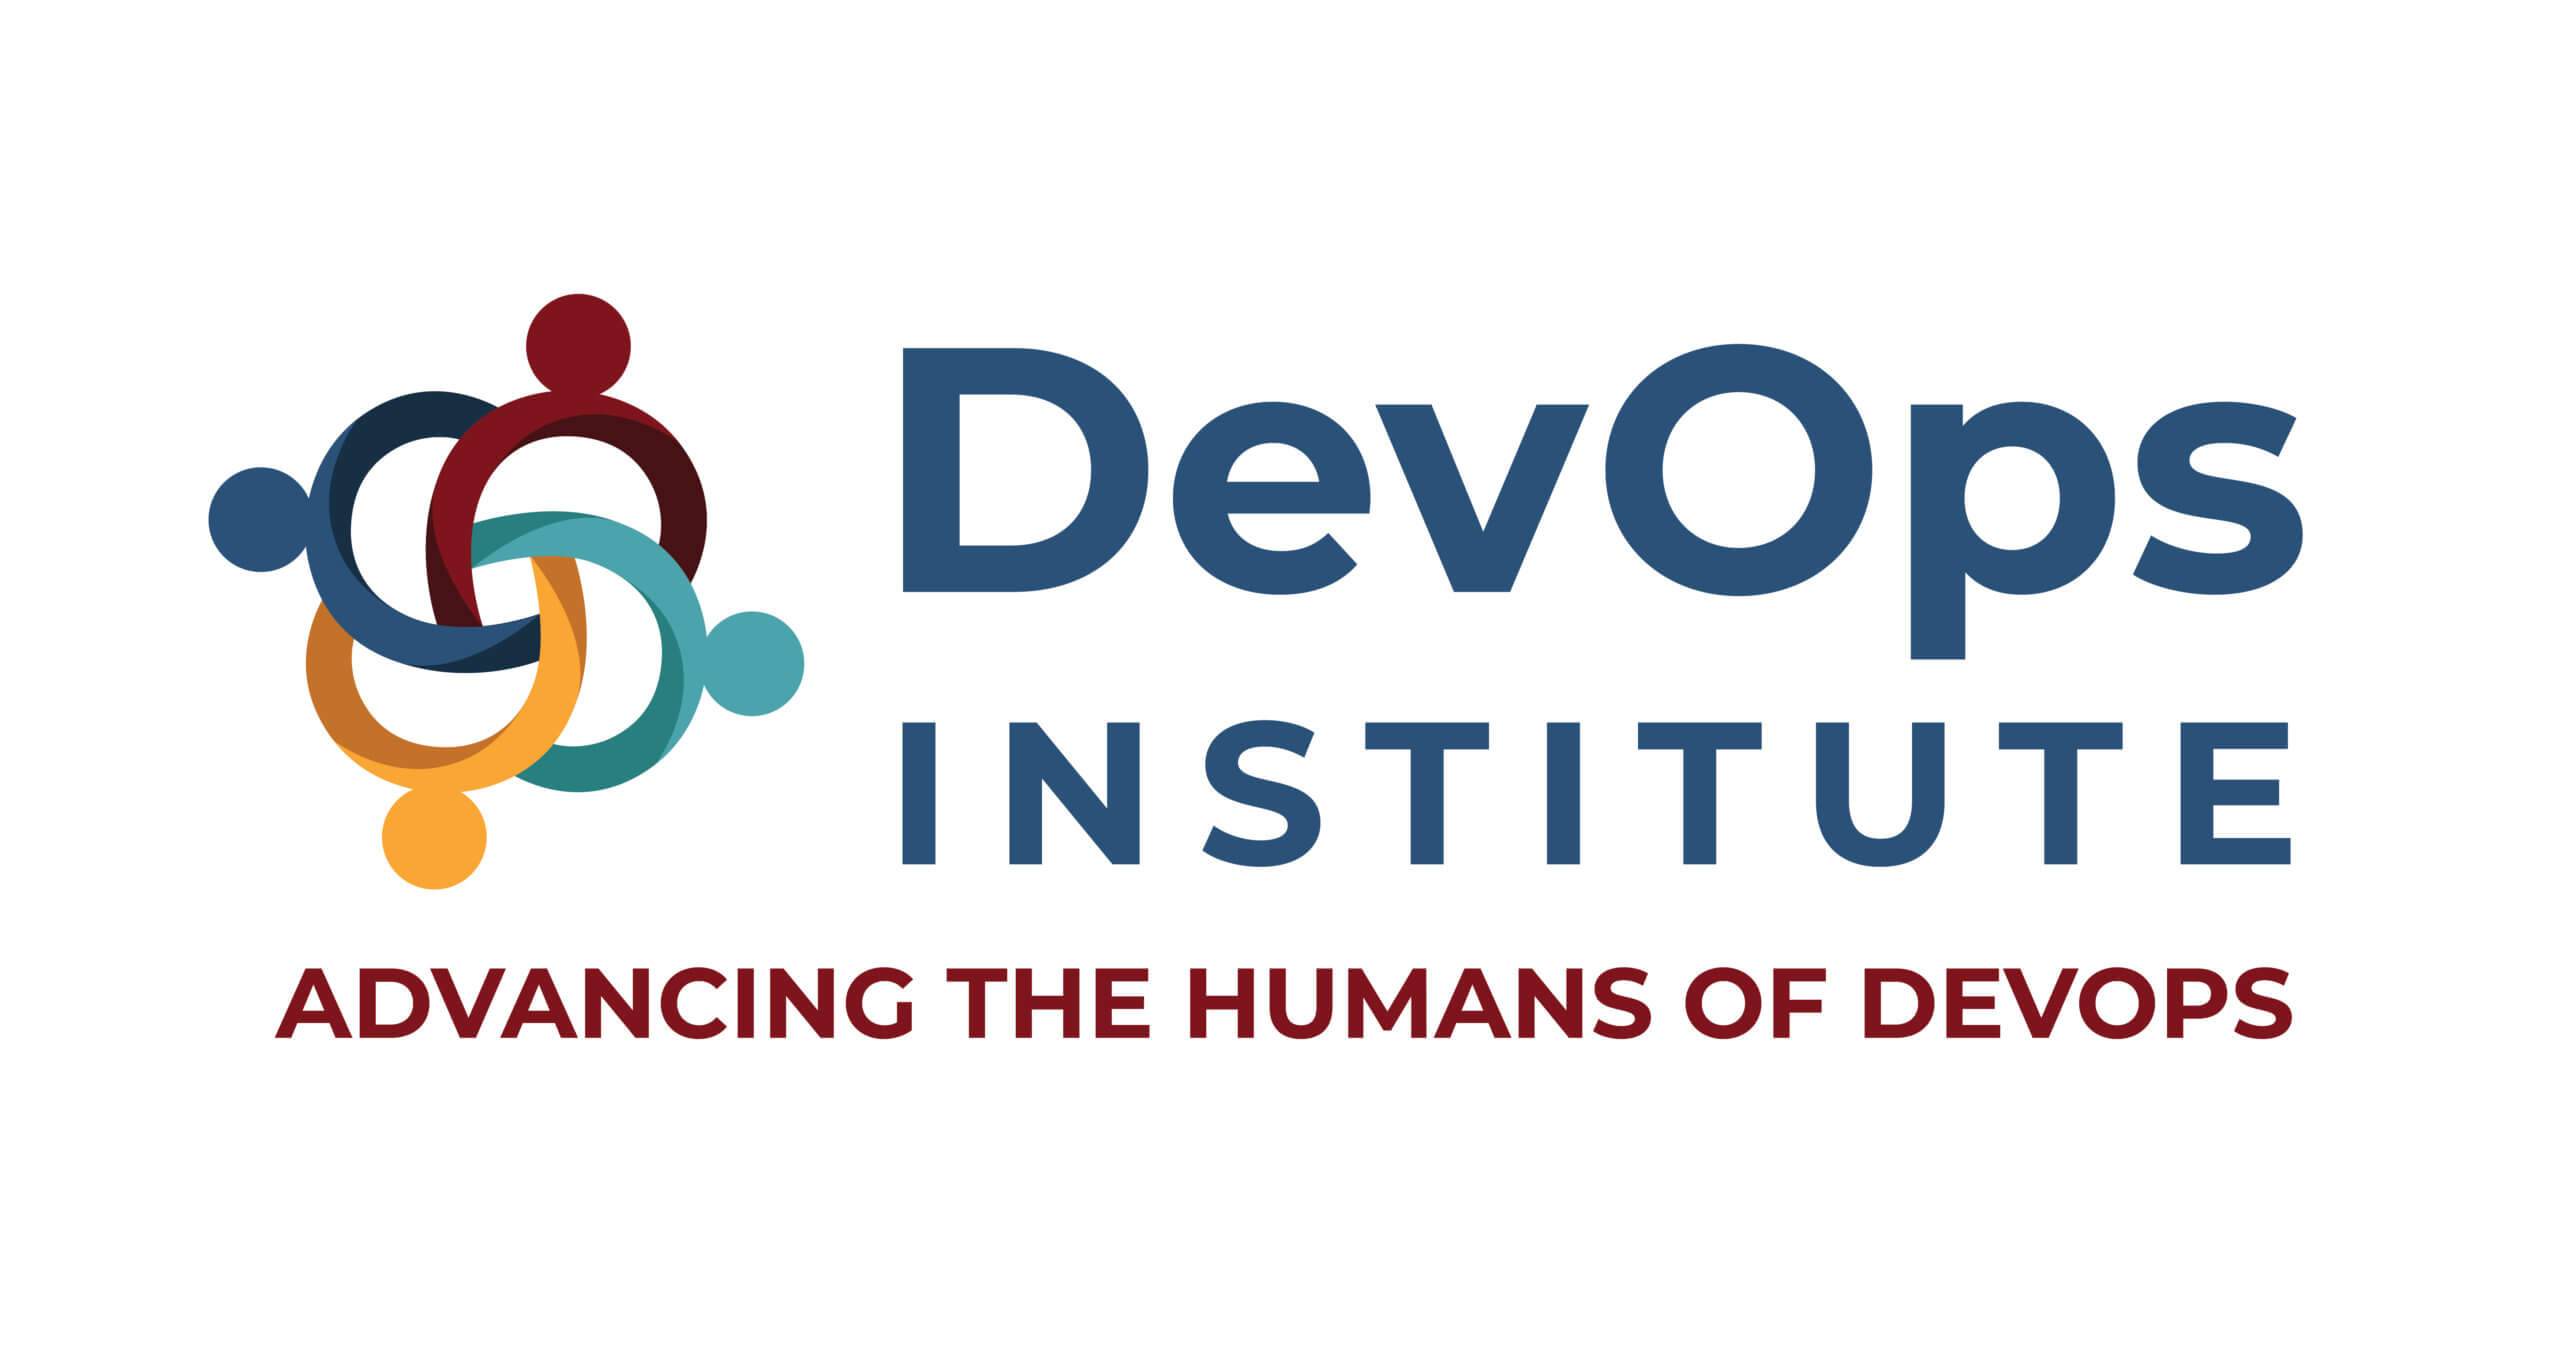 SD Times news digest: DevOps Institute announces tiered memberships, Cloudera Data Platform now available on GCP, Perforce announces C++ coverage in its static code analysis solution